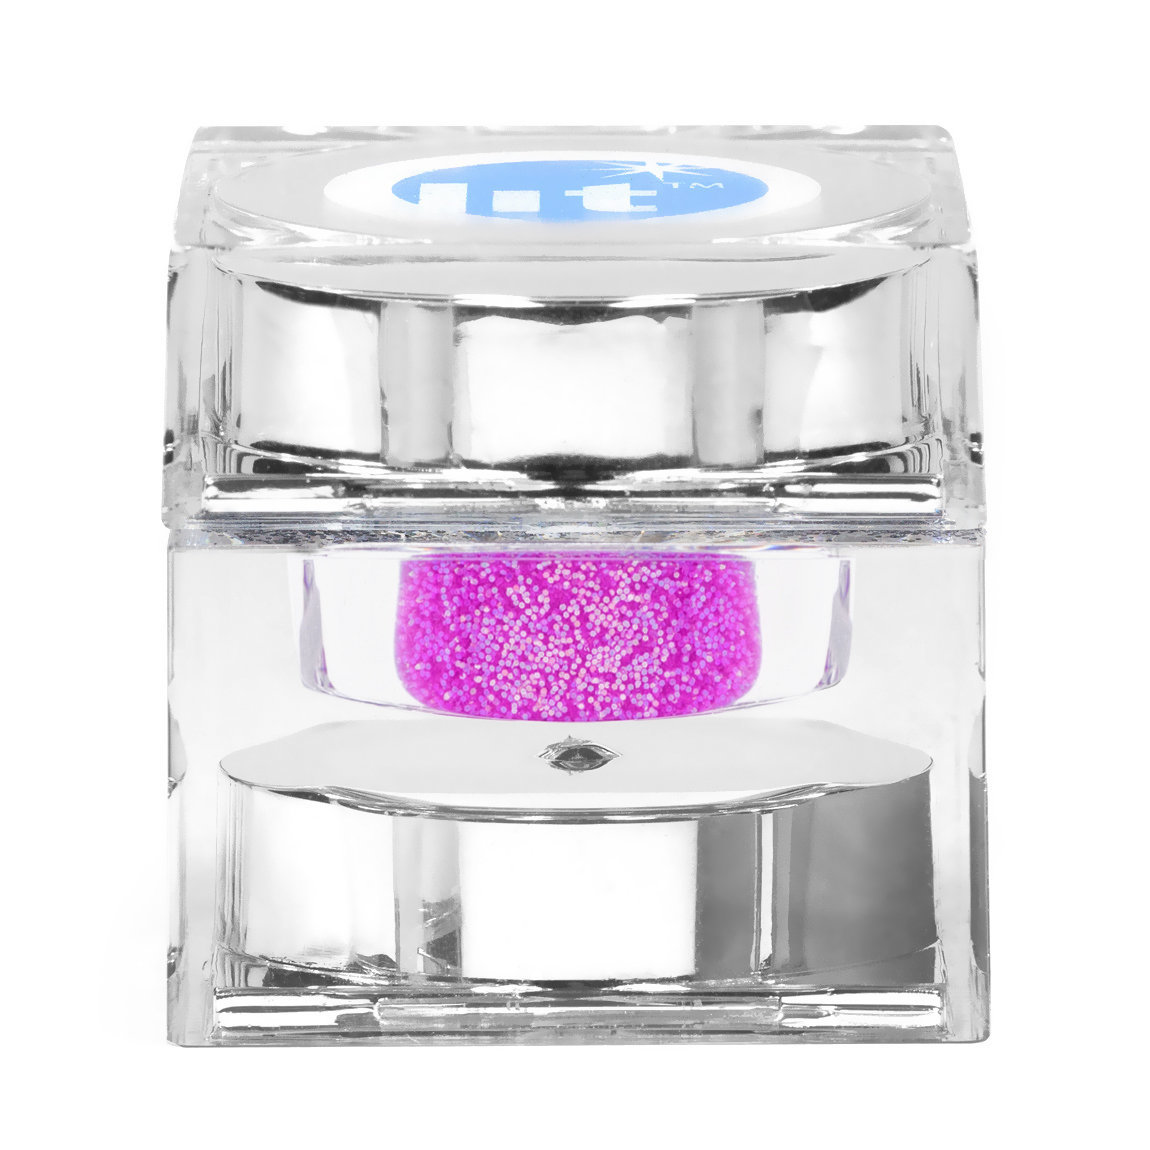 Lit Cosmetics Lit Glitter Afternoon Delight S3 (Shimmer) alternative view 1.